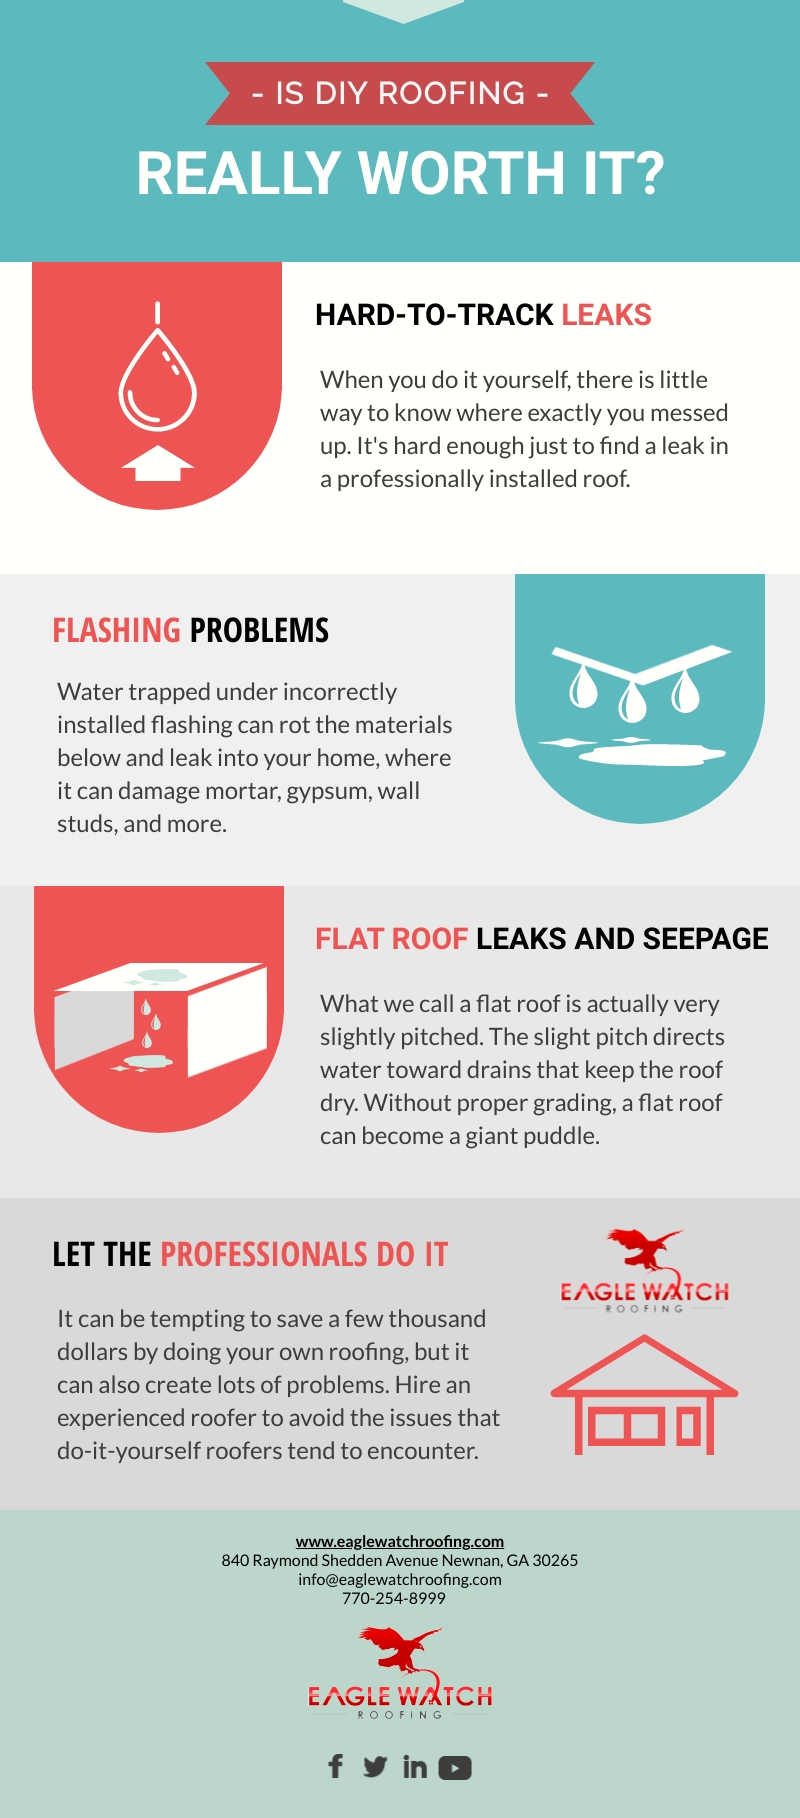 Is DIY Roofing Really Worth It [infographic]